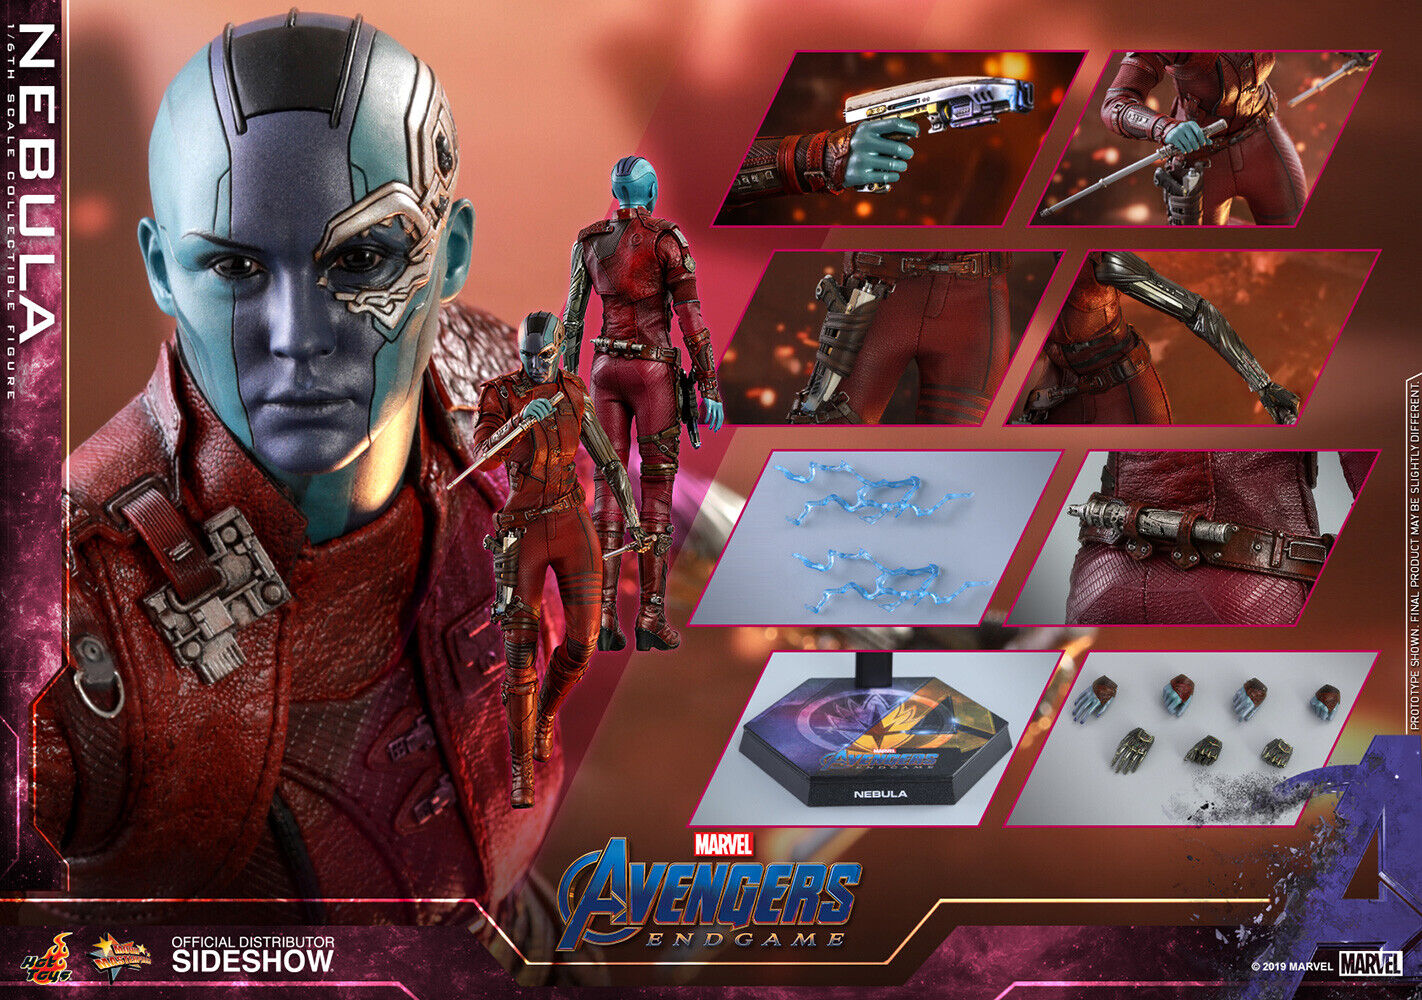 Hot Toys Nebula Avengers Endgame 1:6 Scale Figure Guardians Of The Galaxy MMS534 on eBay thumbnail